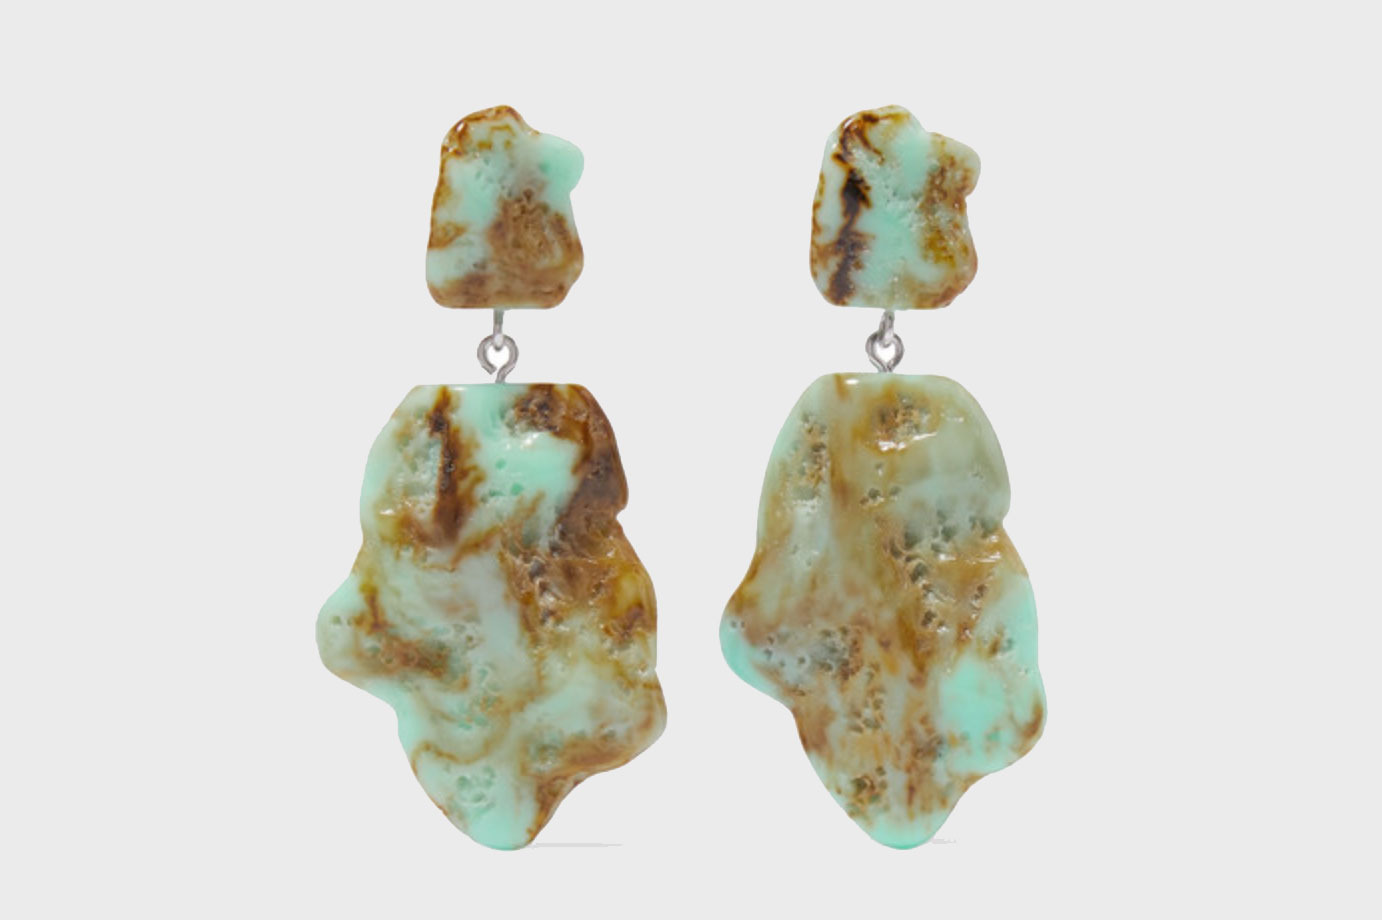 Valet Molly Marbled Resin Earrings